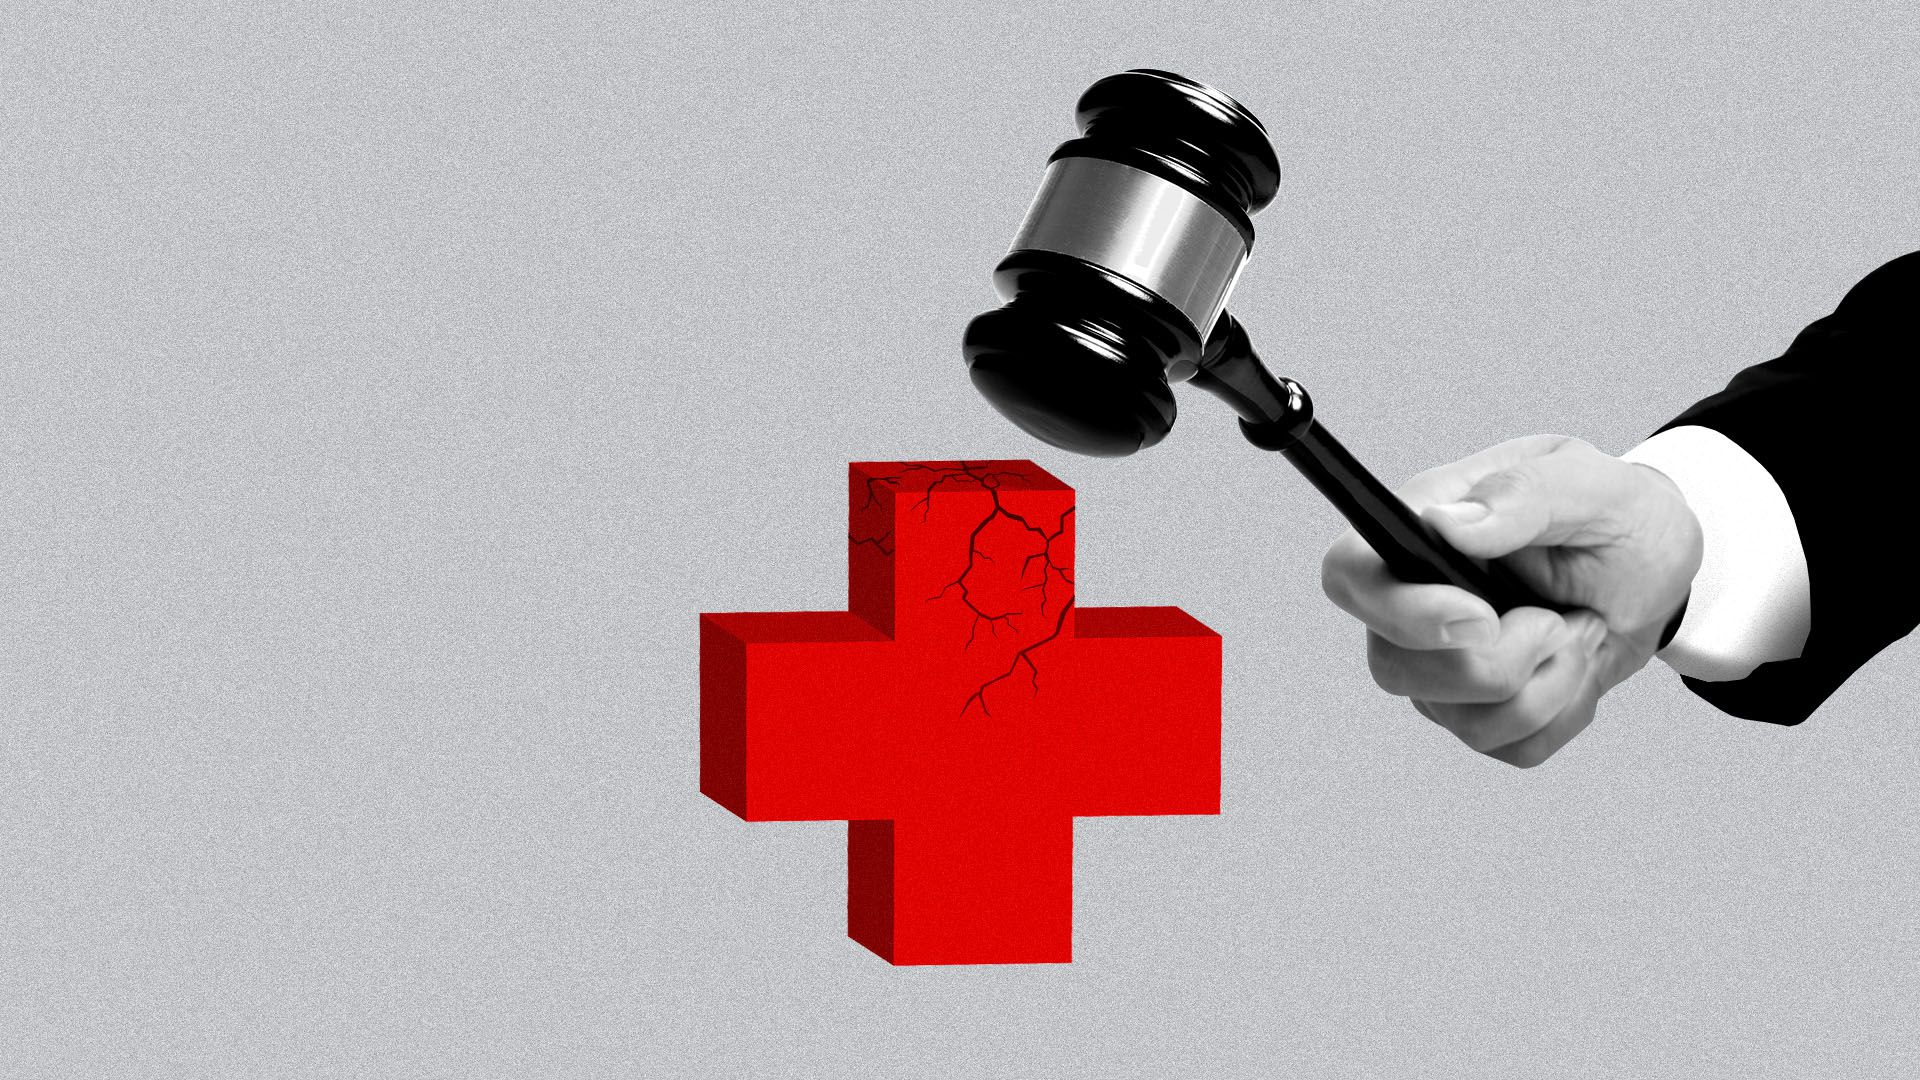 Illustration of hand with gavel breaking a red cross symbol